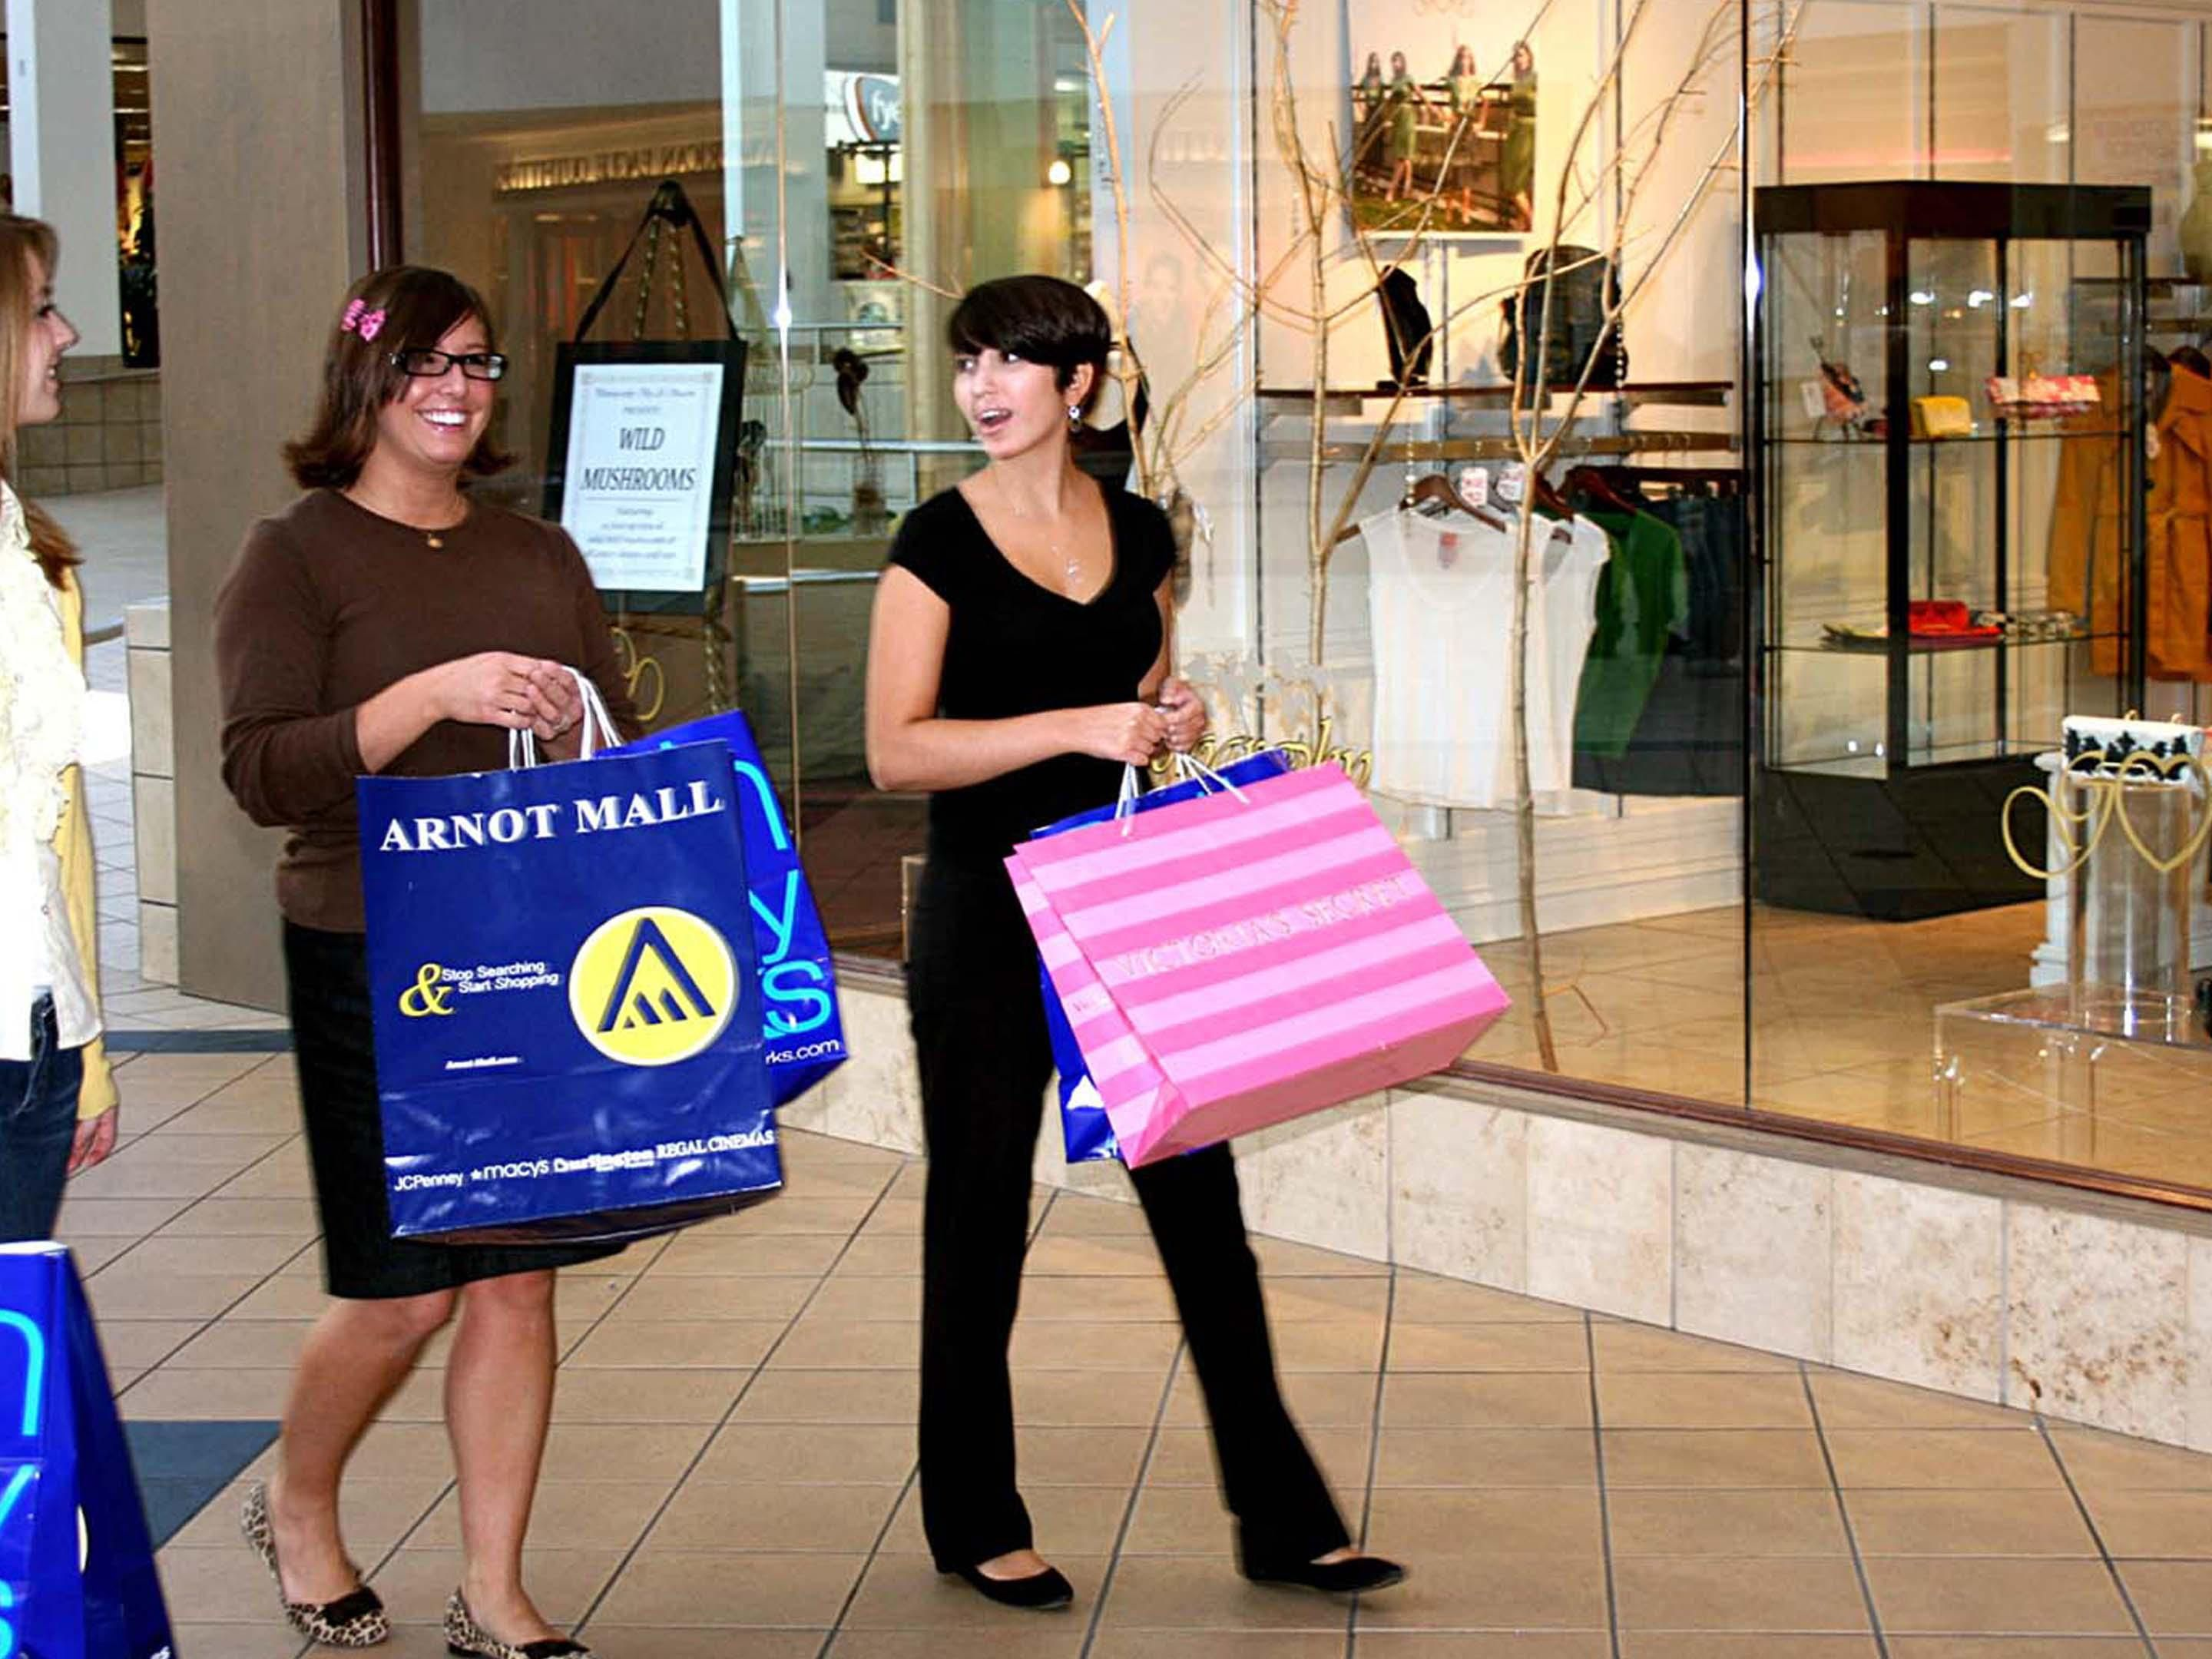 Shopping at the Arnot Mall